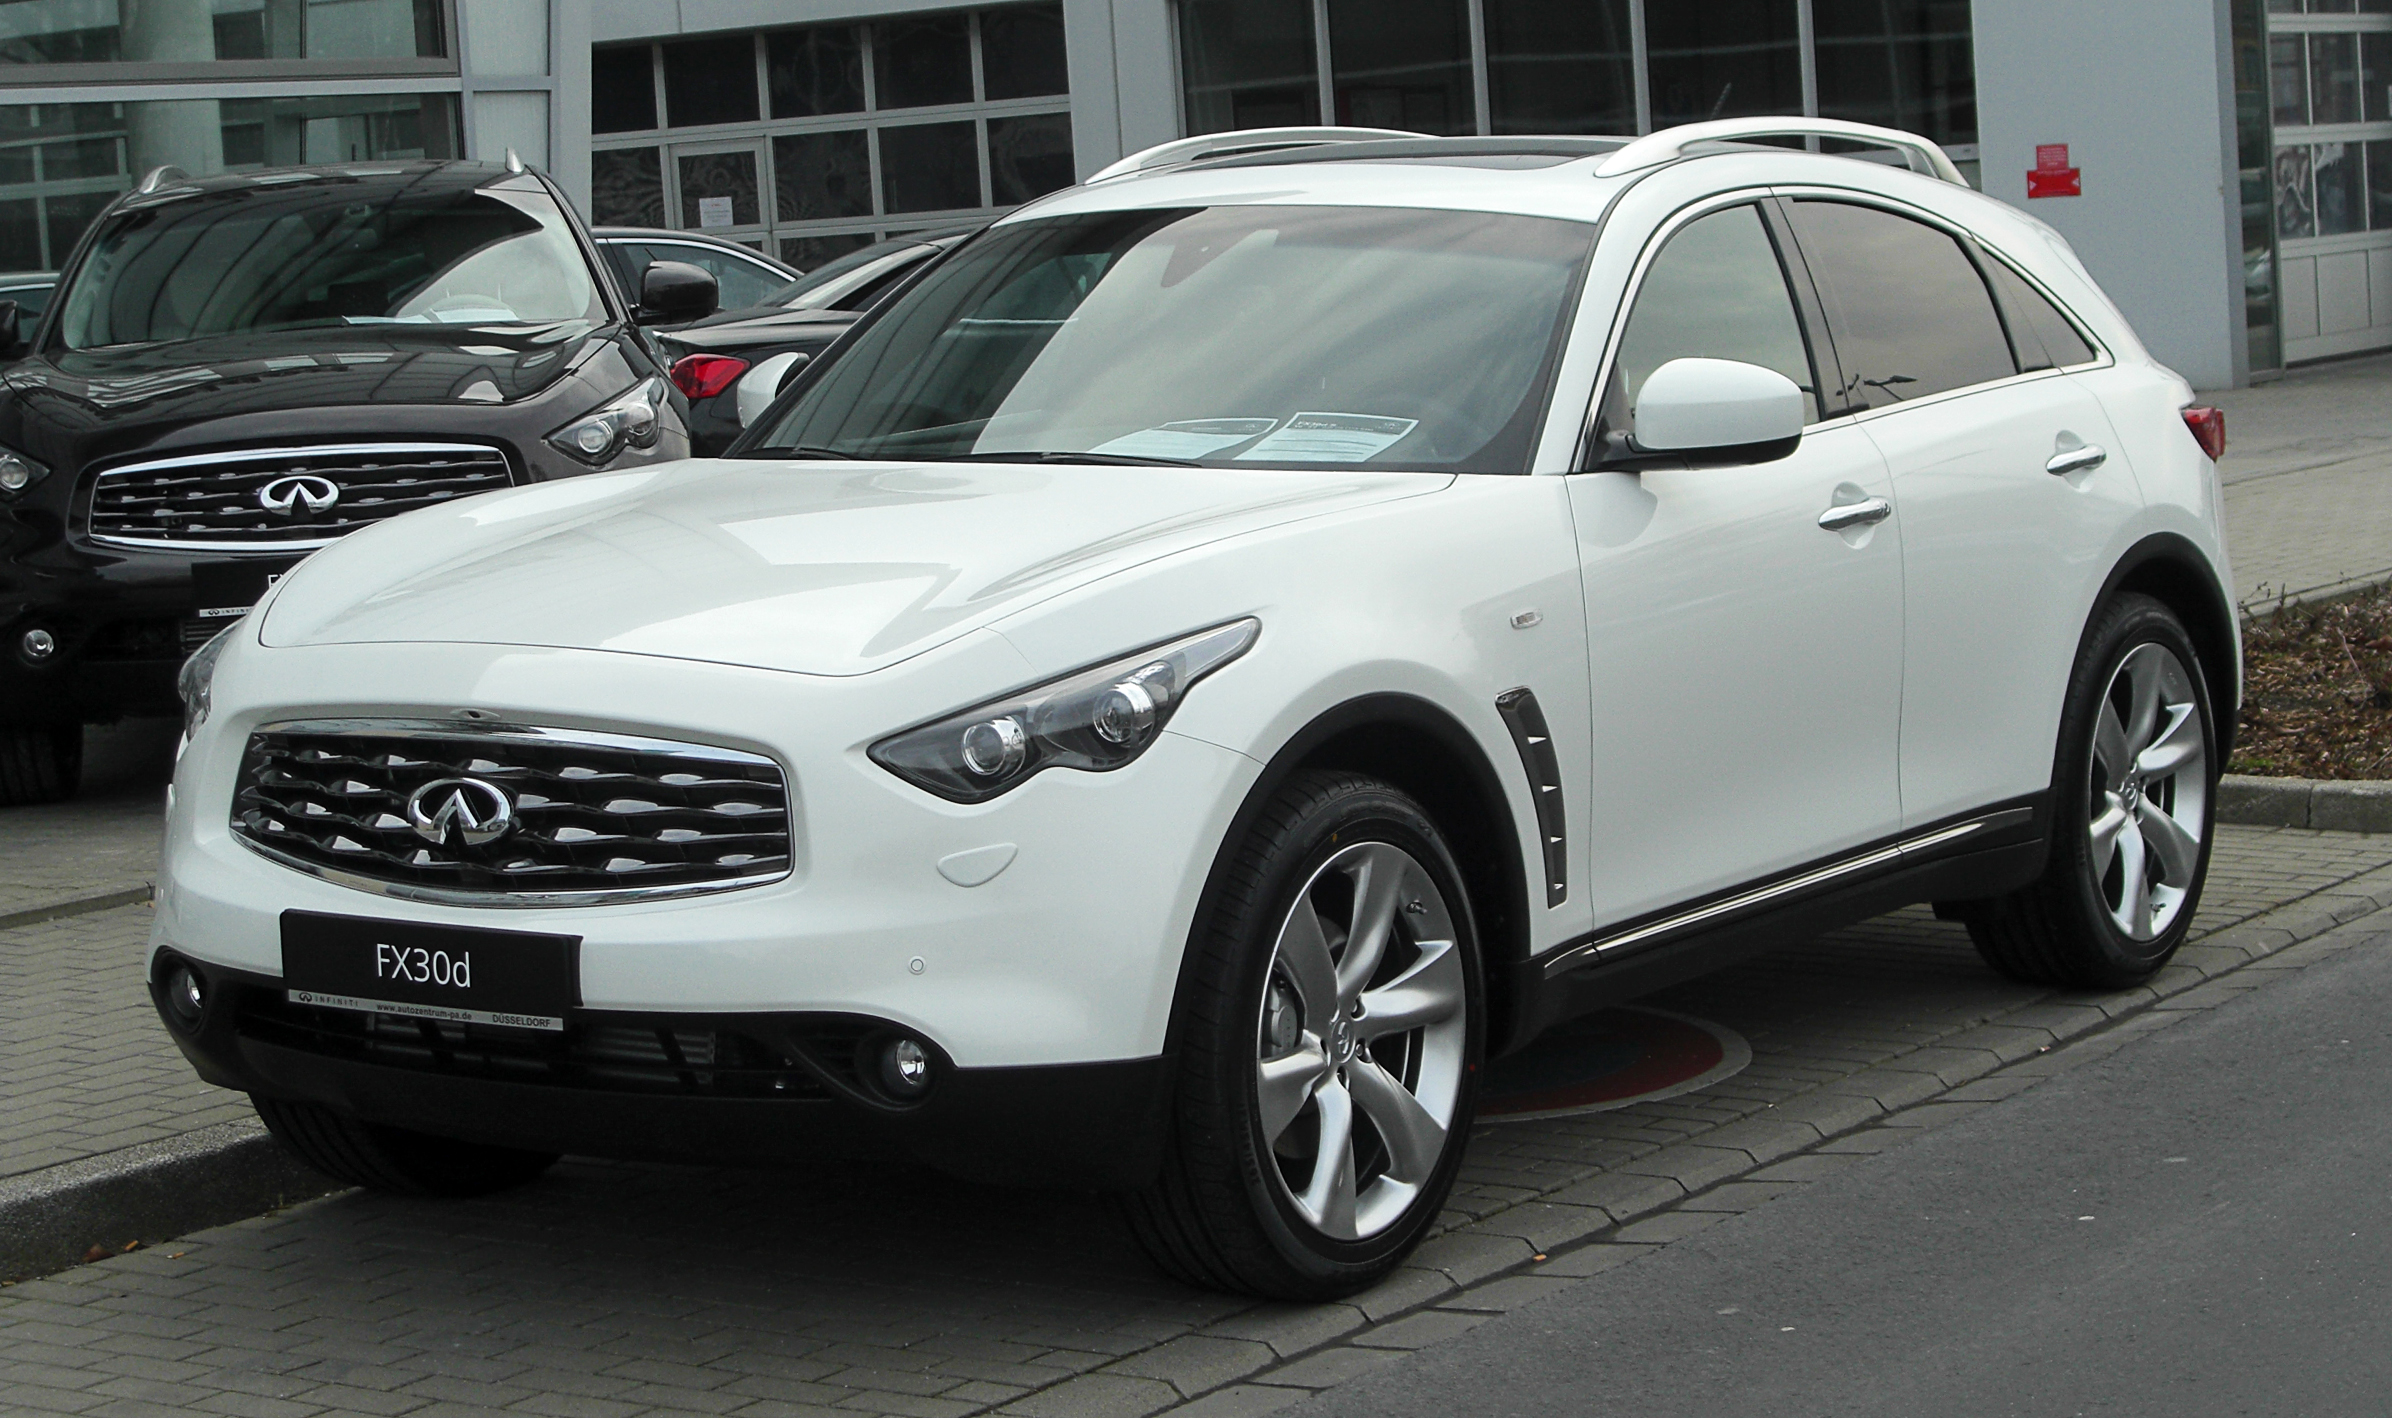 FX30D car - Color: White  // Description: amazing